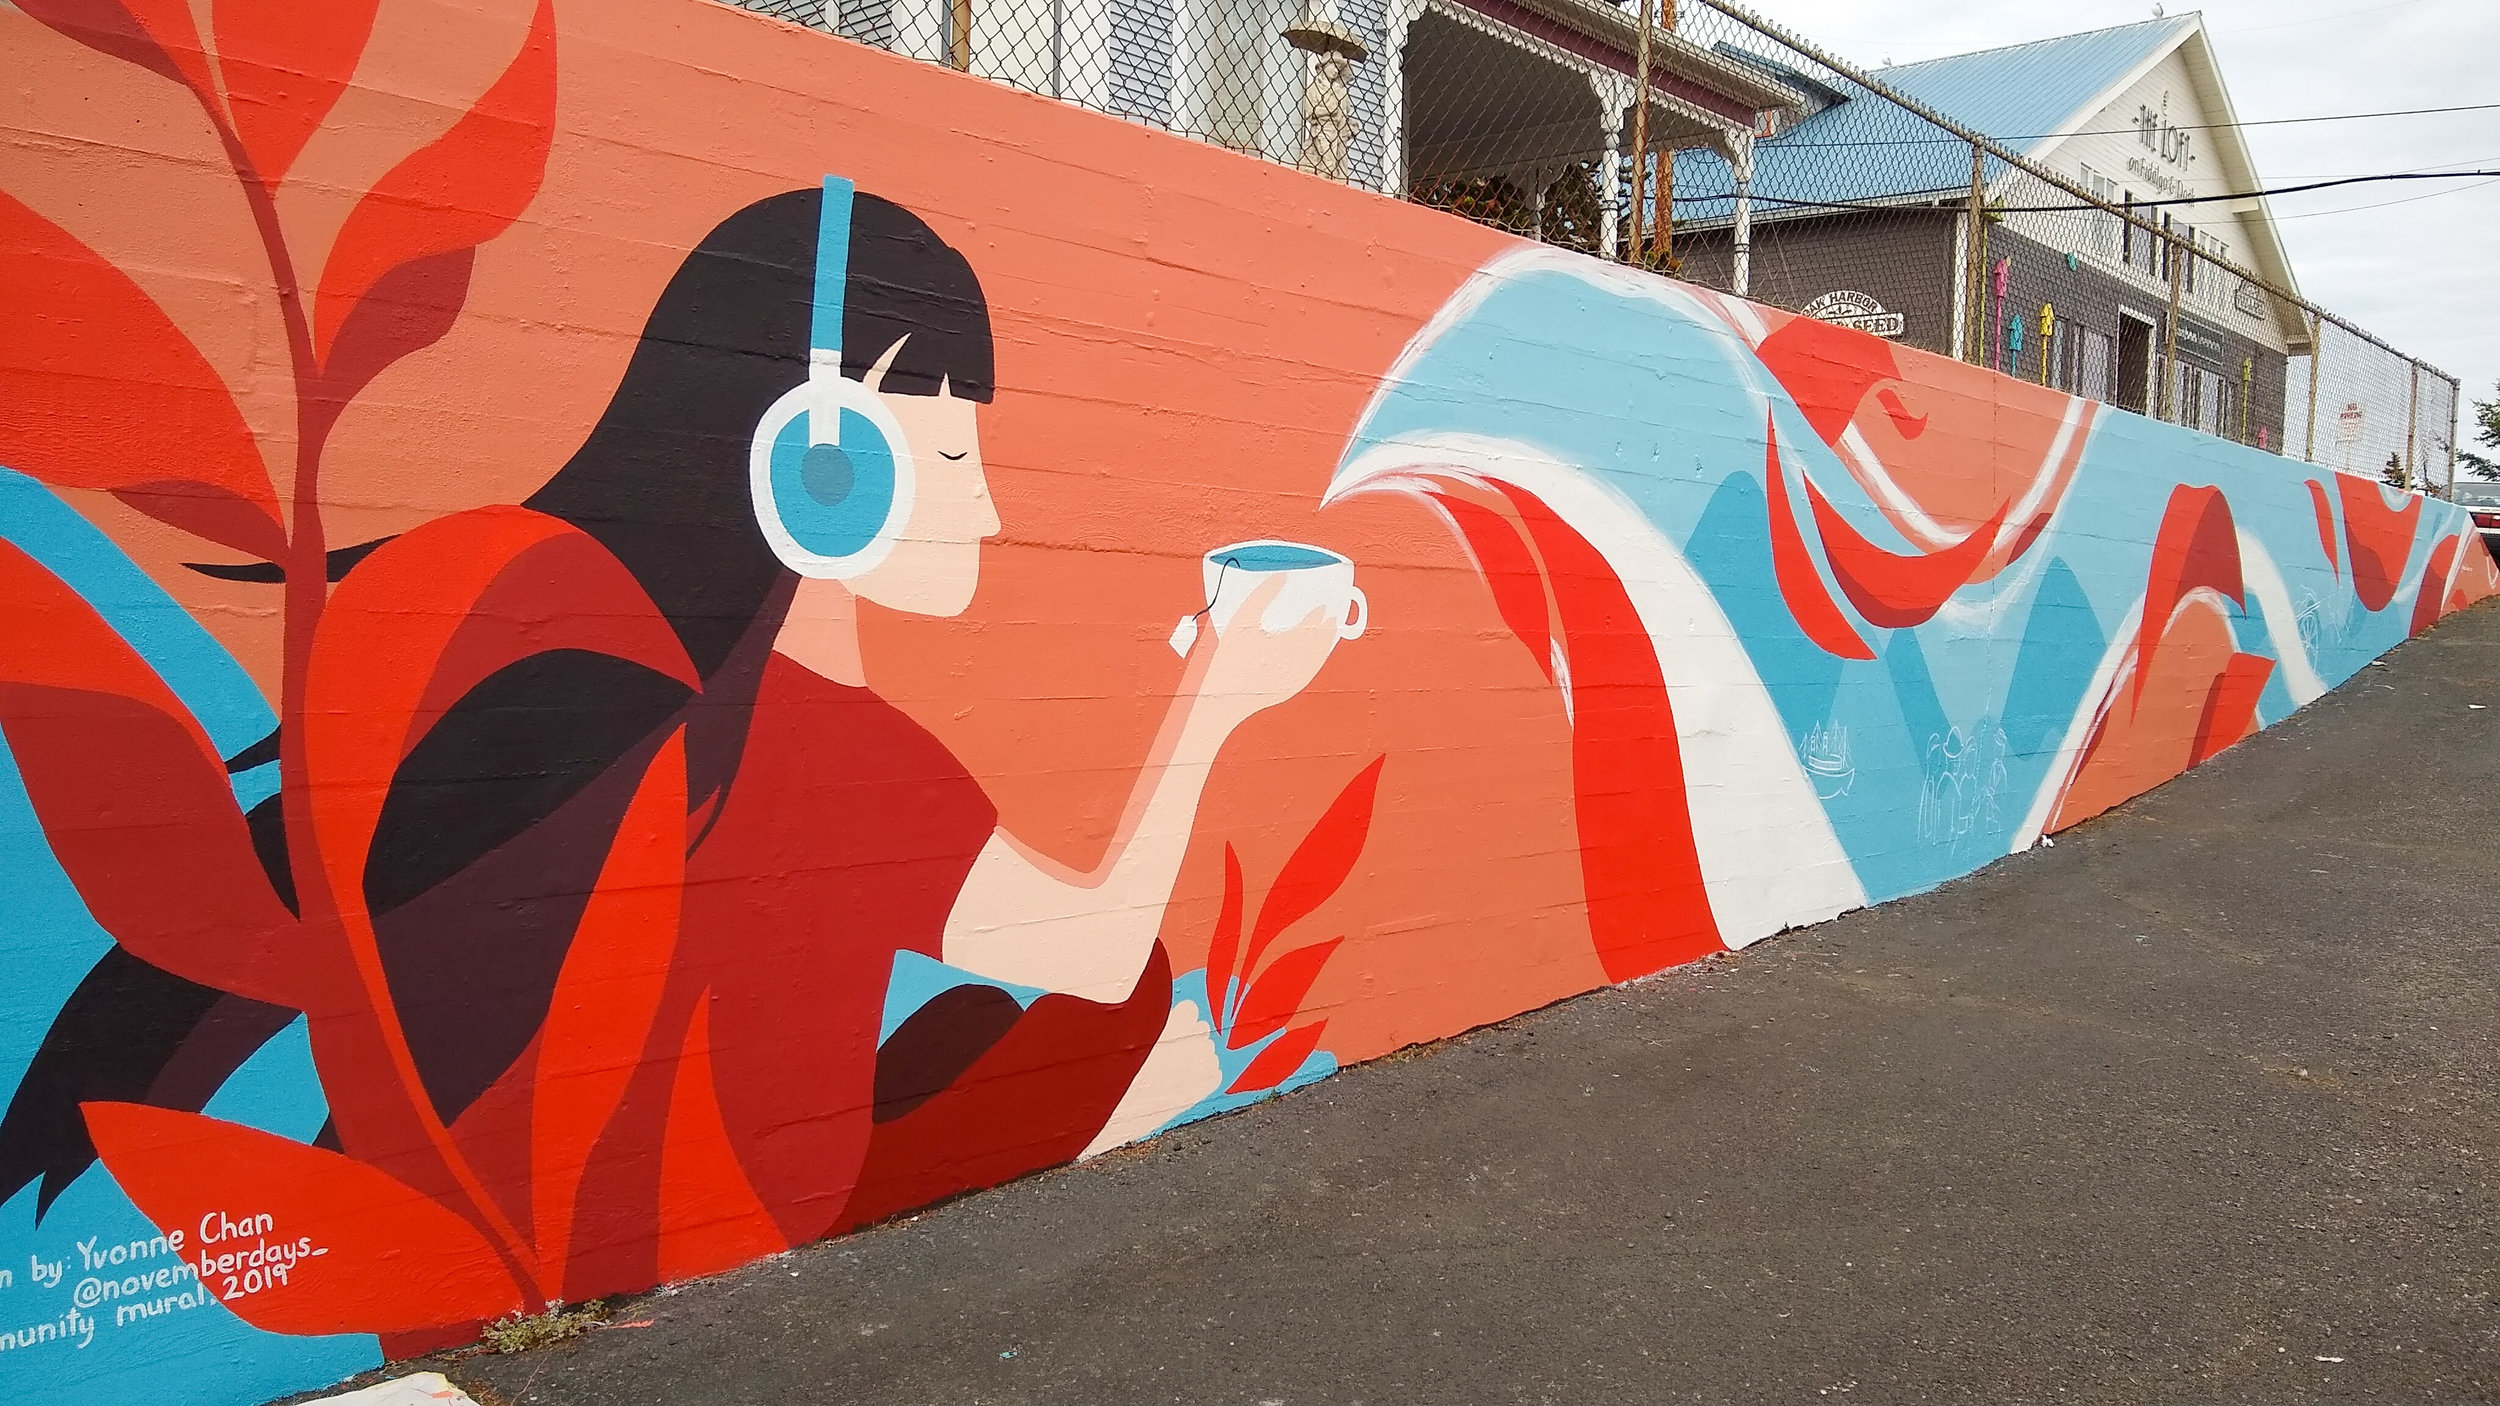 Image Desc: Brightly colored mural depicting a girl listening to headphones and holding a cup of tea, while the rolling steam shows images of early Chinese immigrants arriving on ships and working on farms.